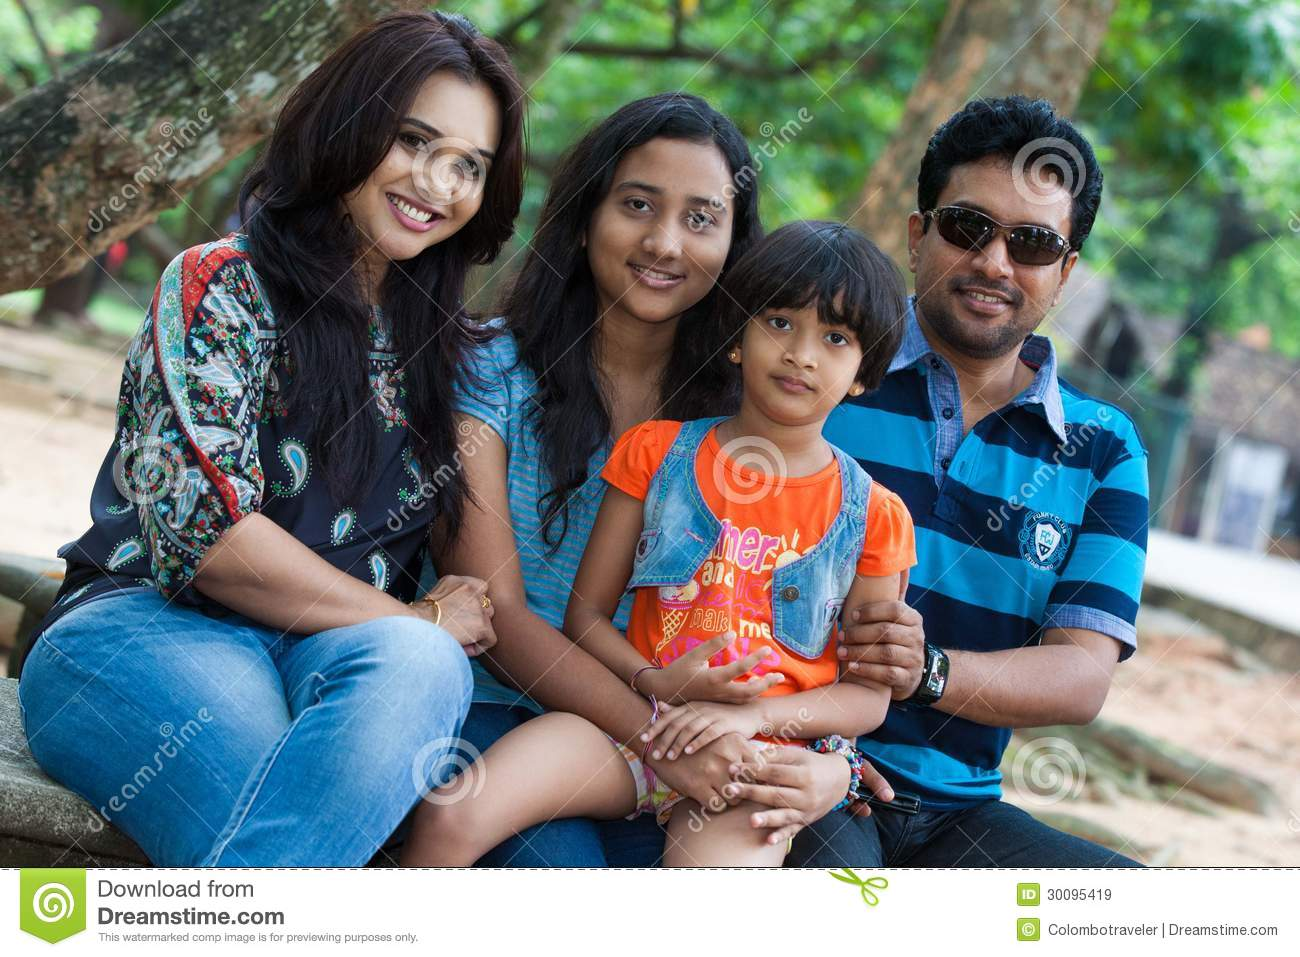 Channa Perera and family